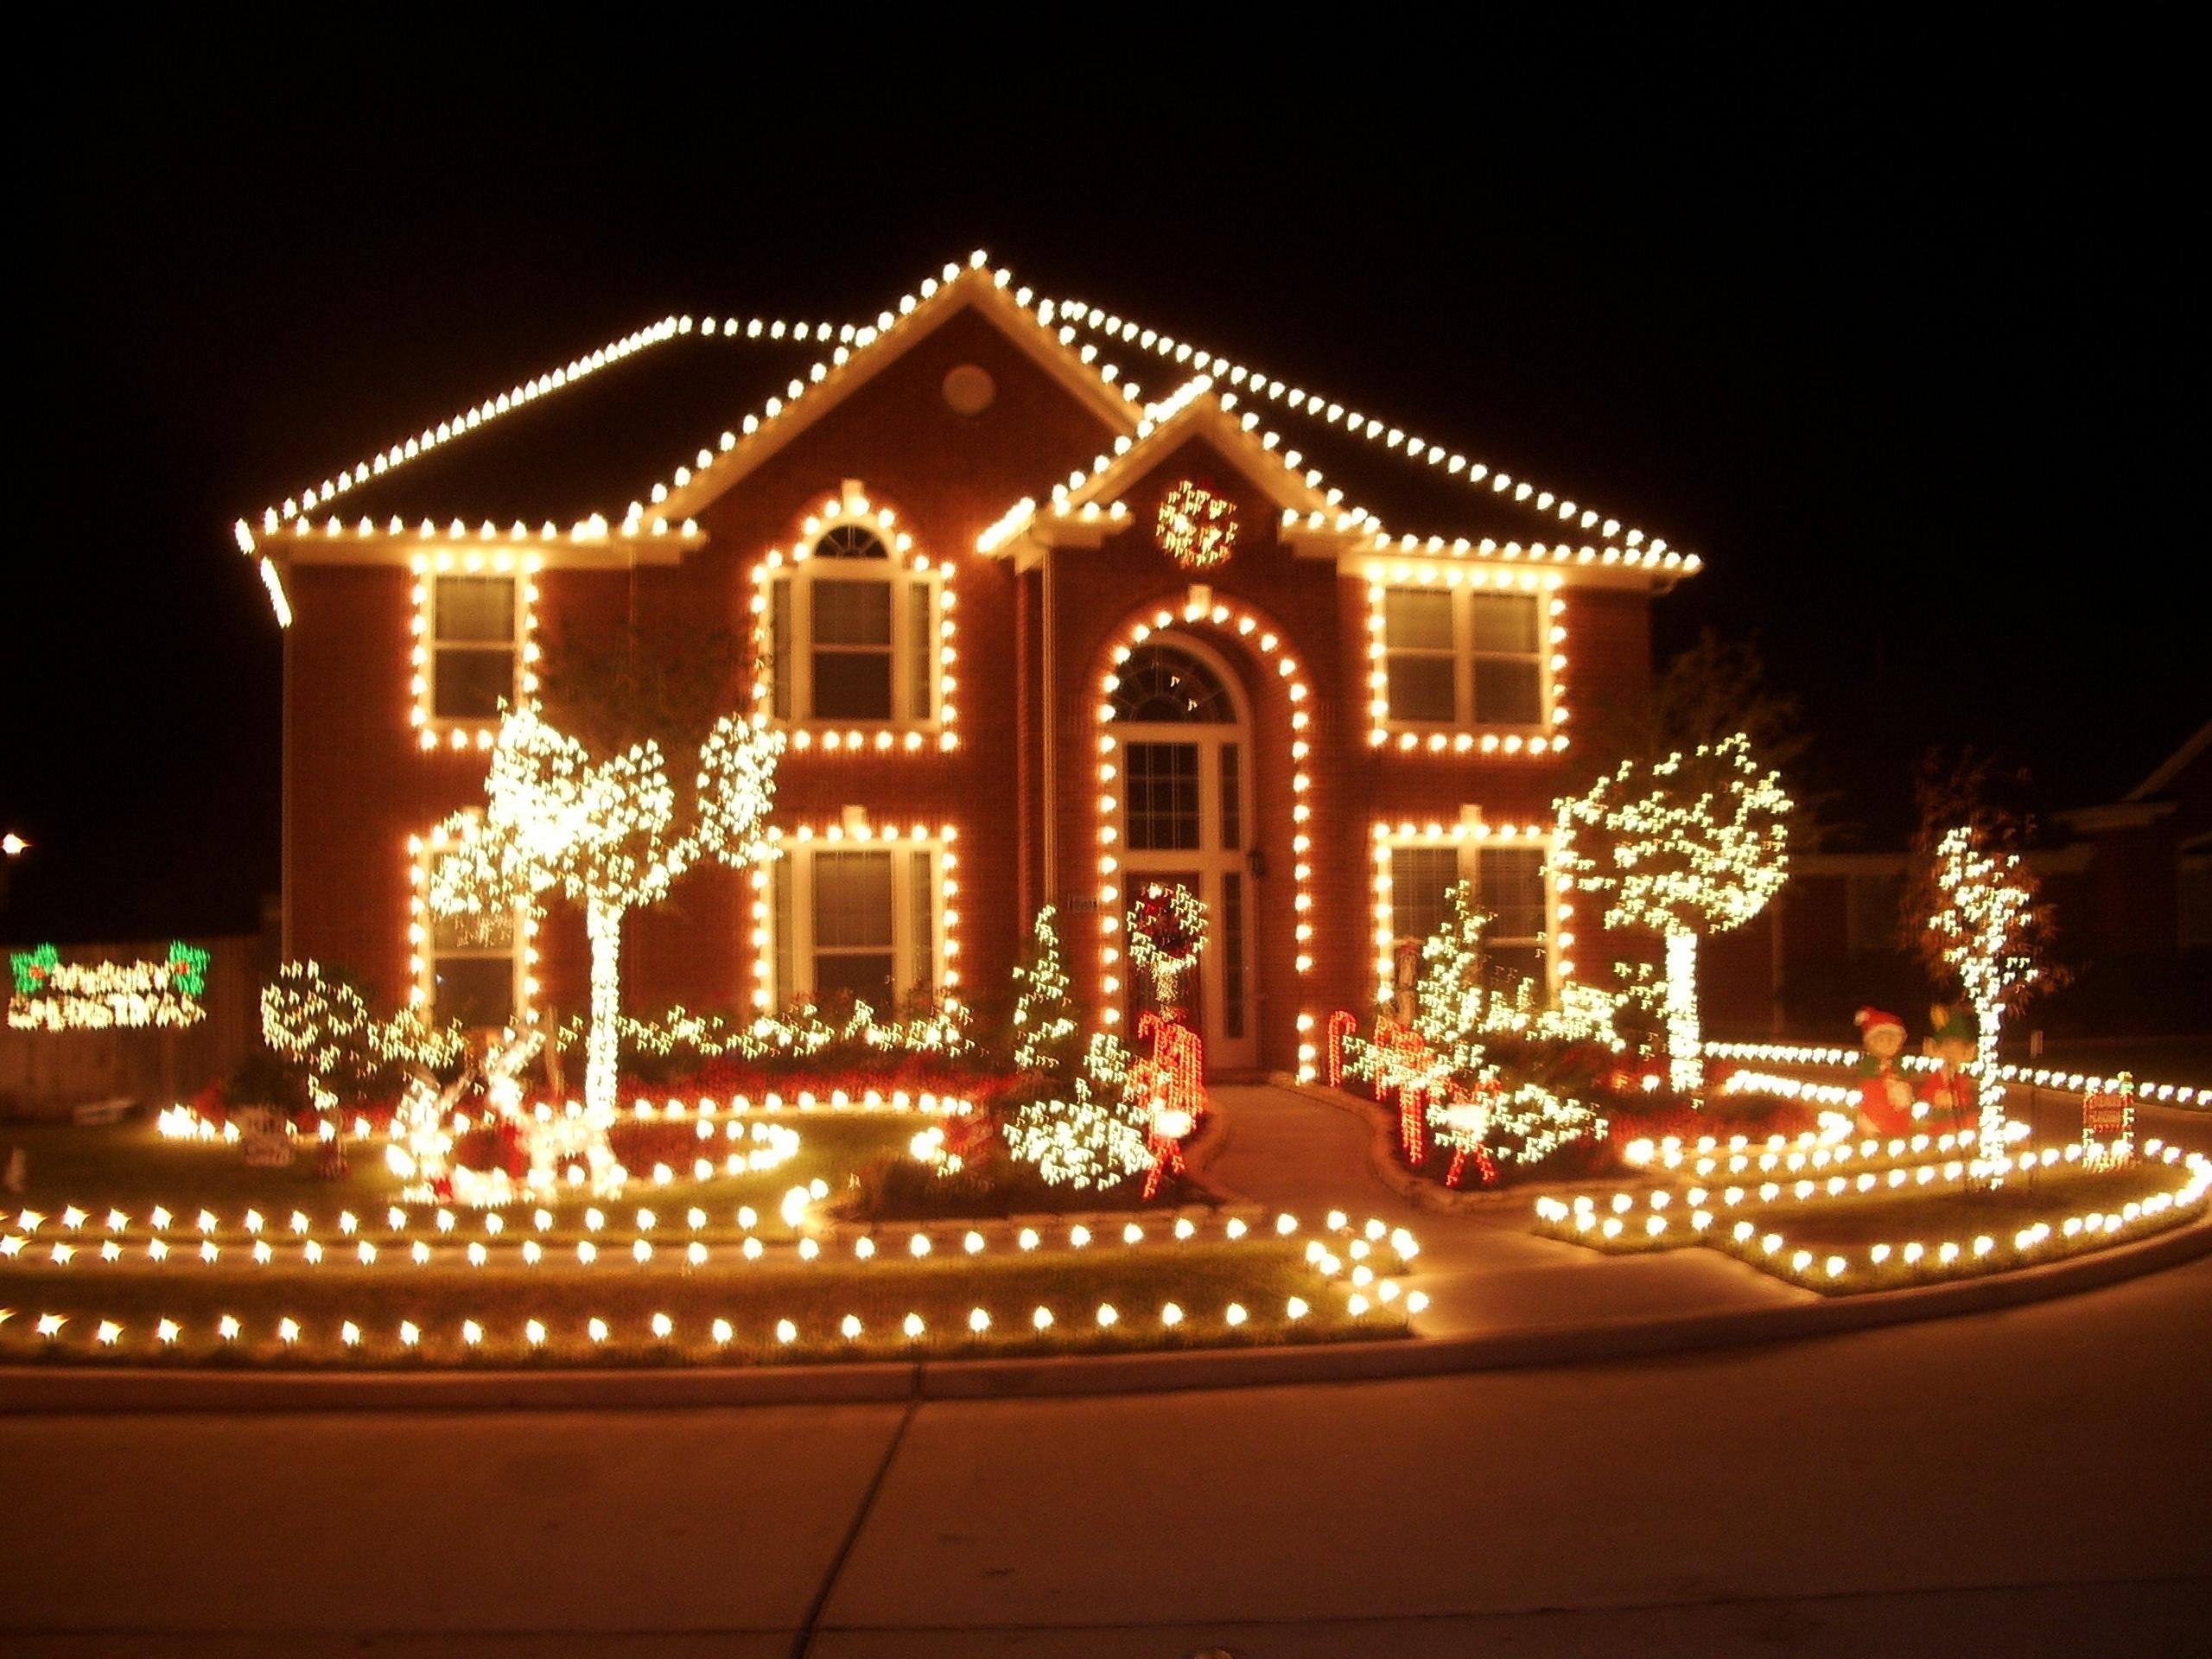 Best Diy Outdoor Lighting Ideas For Trees 2390427622 Outdoorgardendecor Decorating With Christmas Lights Diy Christmas Lights Christmas House Lights